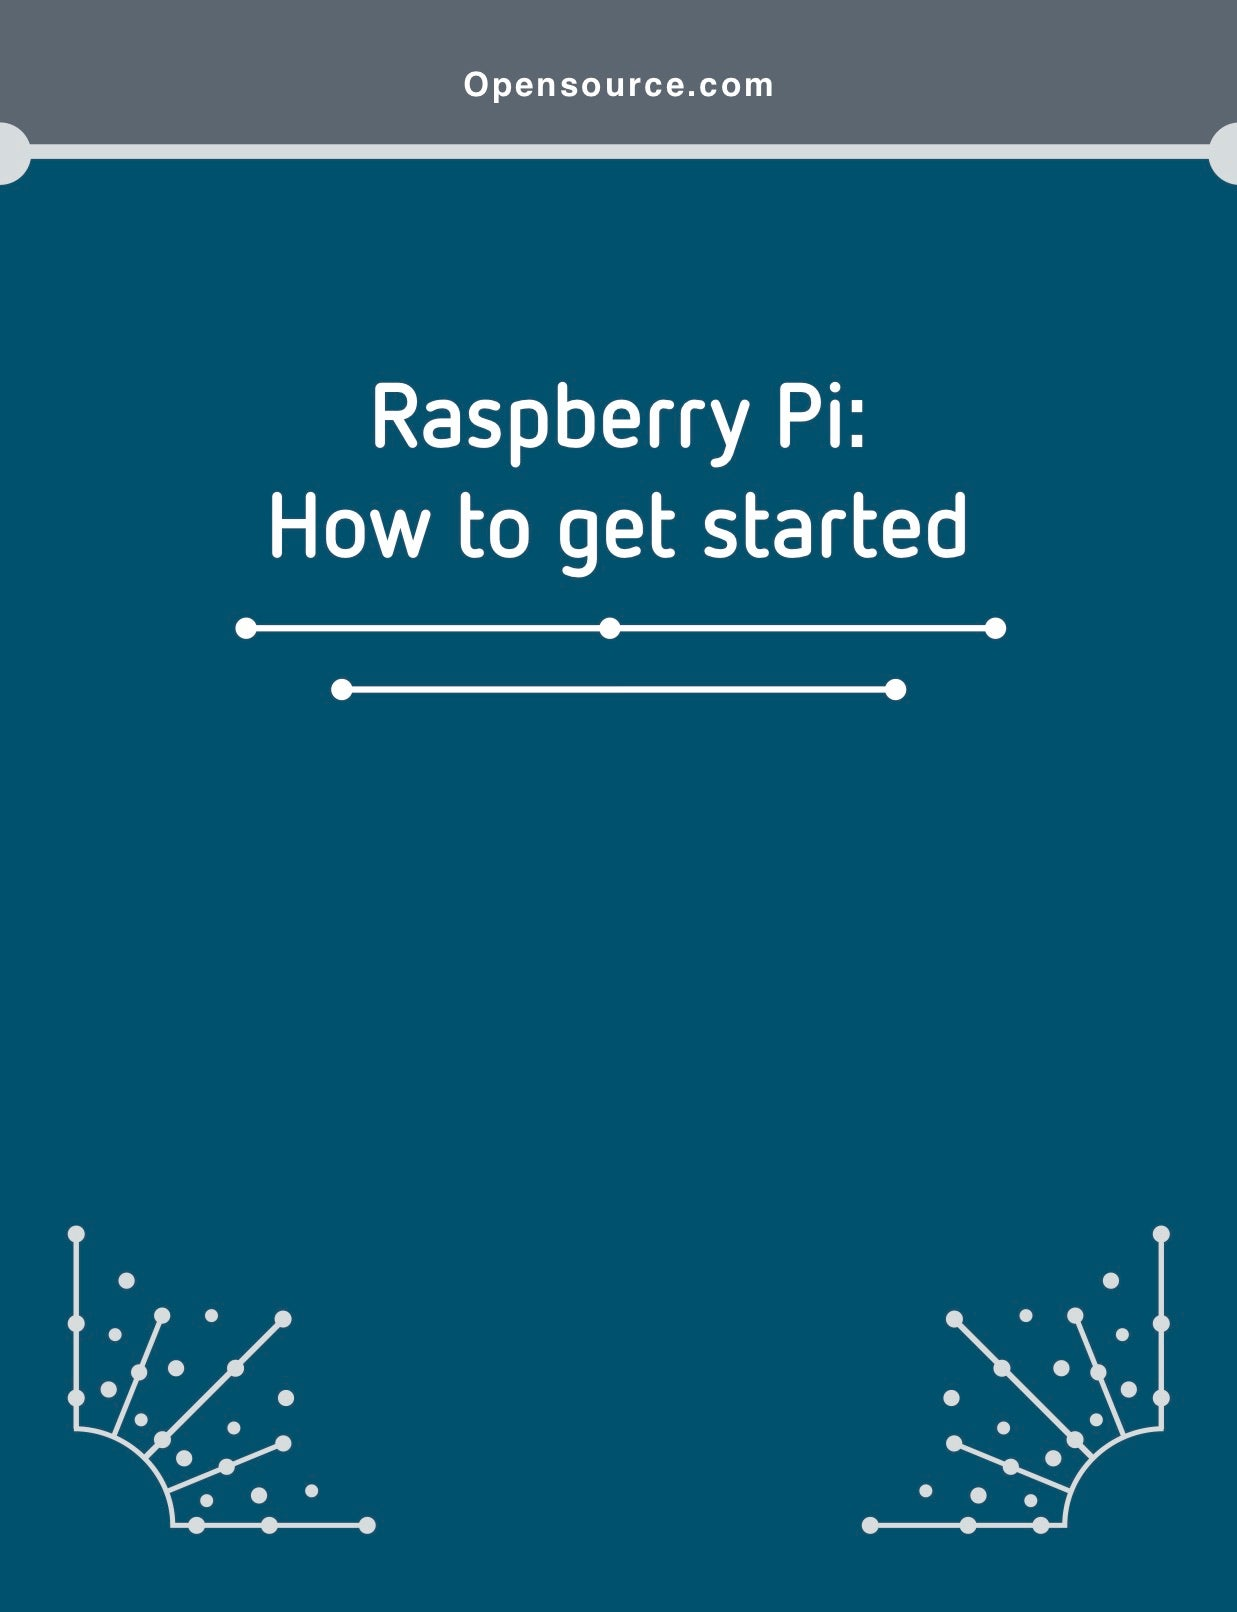 How to get started with the Raspberry Pi